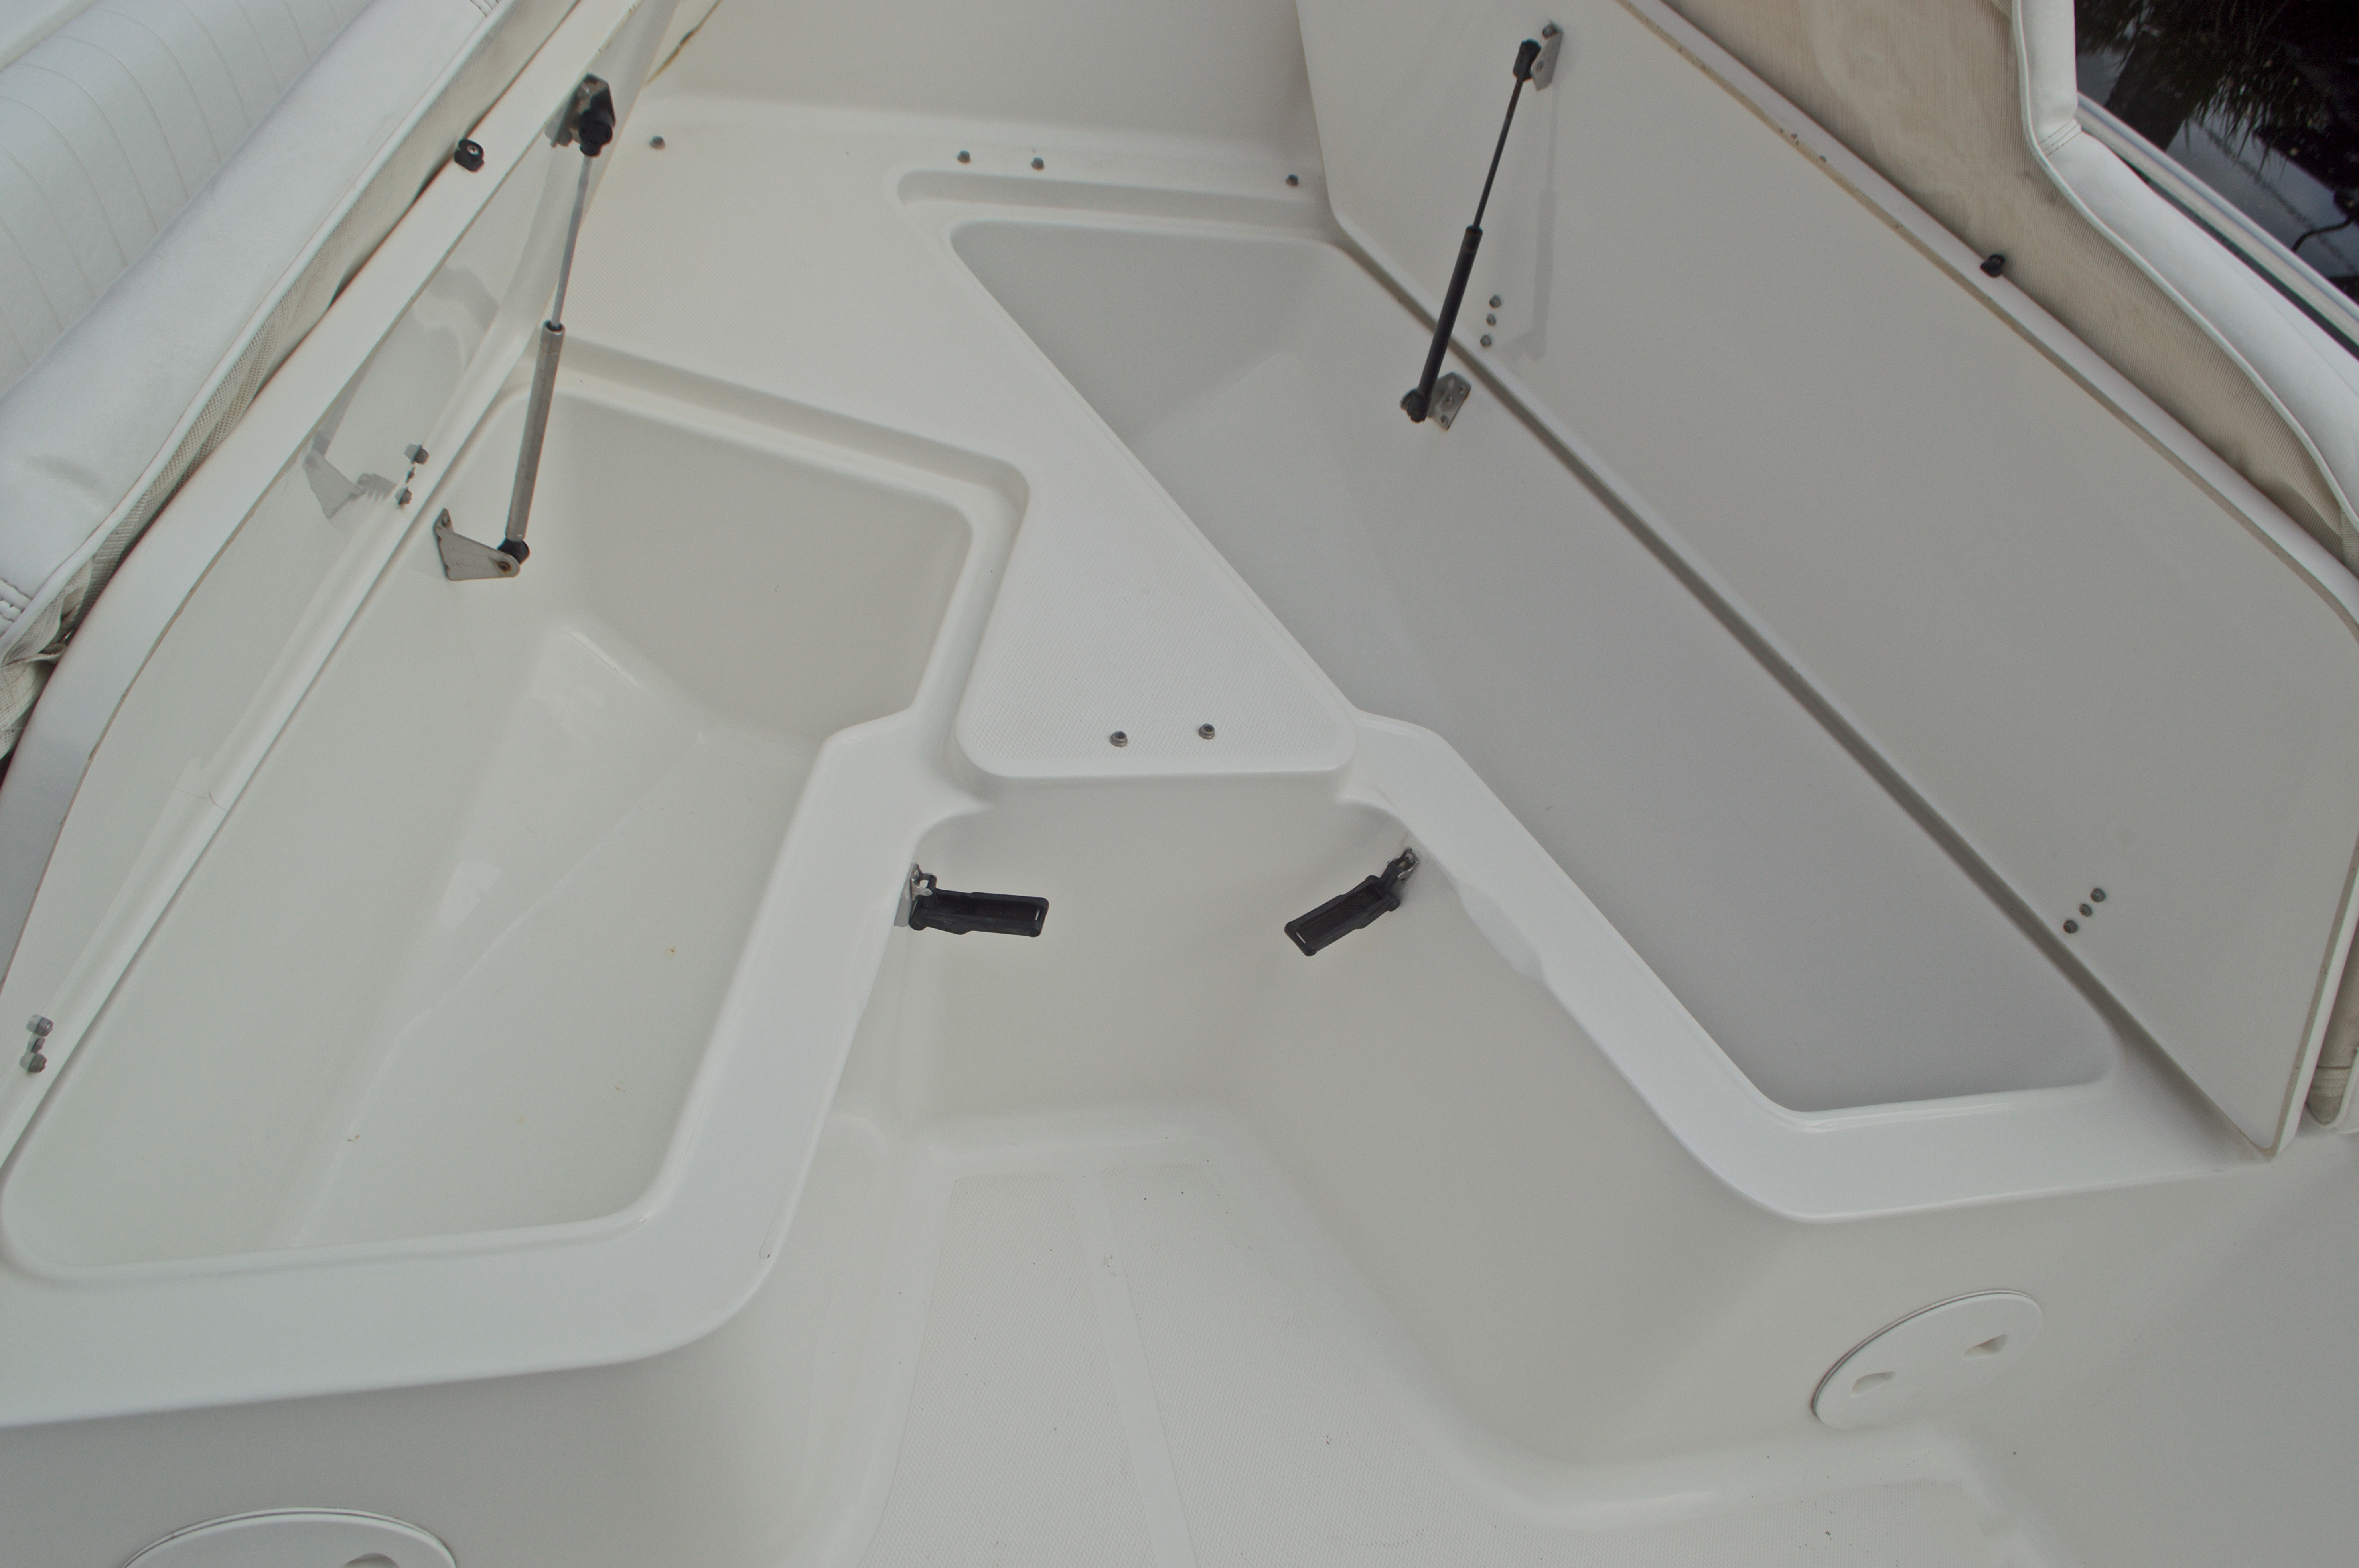 Thumbnail 52 for Used 2009 Sea Hunt 207 Triton boat for sale in West Palm Beach, FL